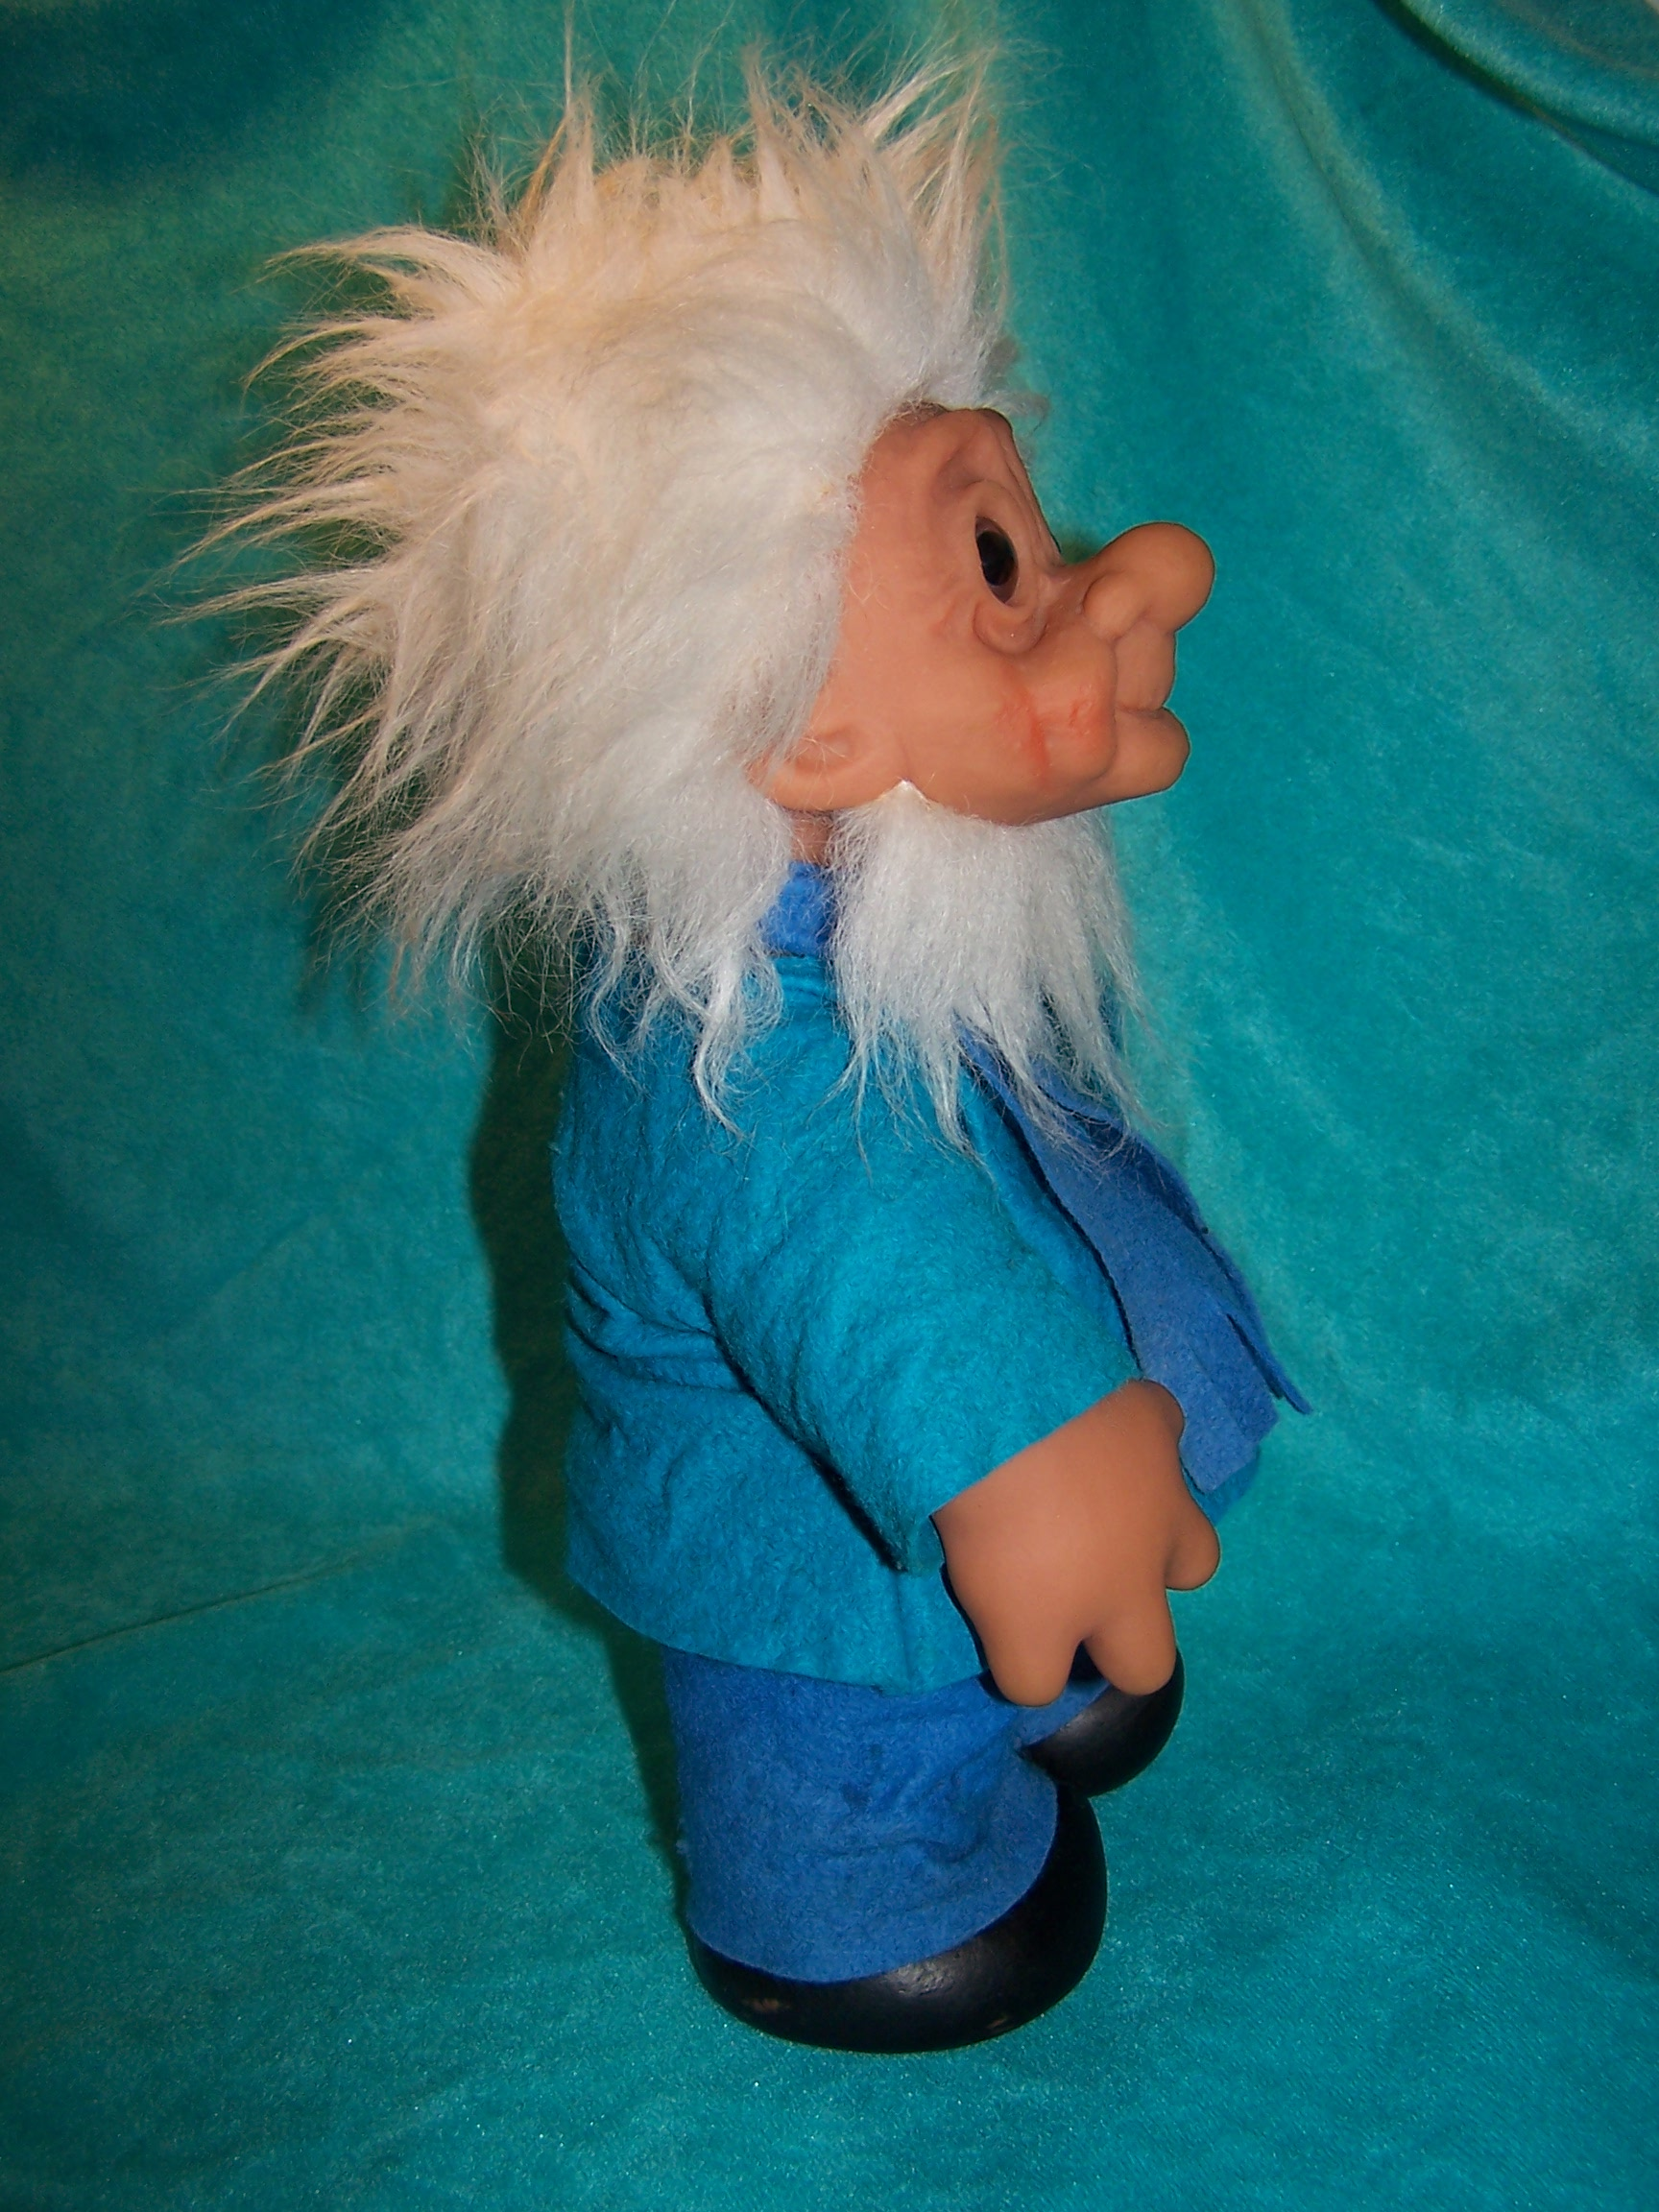 Image 4 of Norfin Troll Doll Grandpa, Thomas Dam, 1977 Denmark